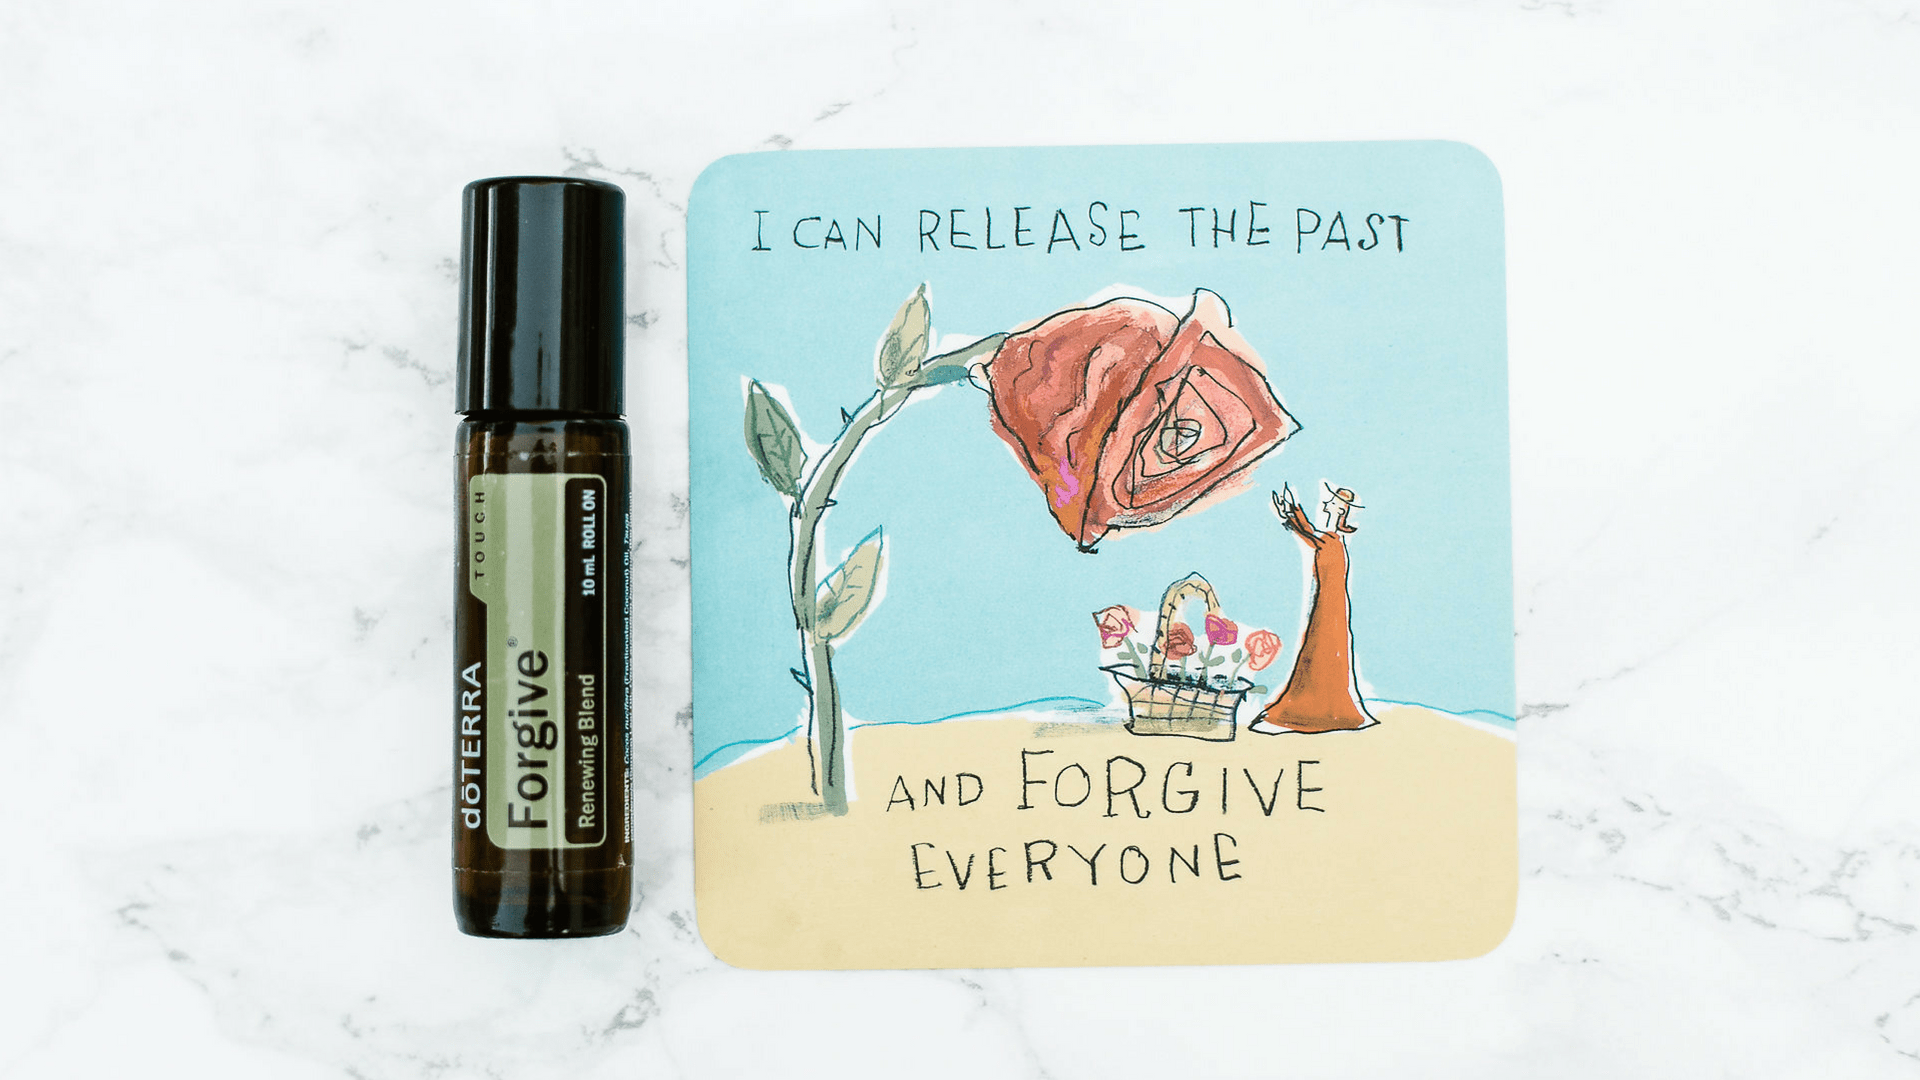 Forgive Essential Oil rollerball with affirmation I can release the past and forgive everyone